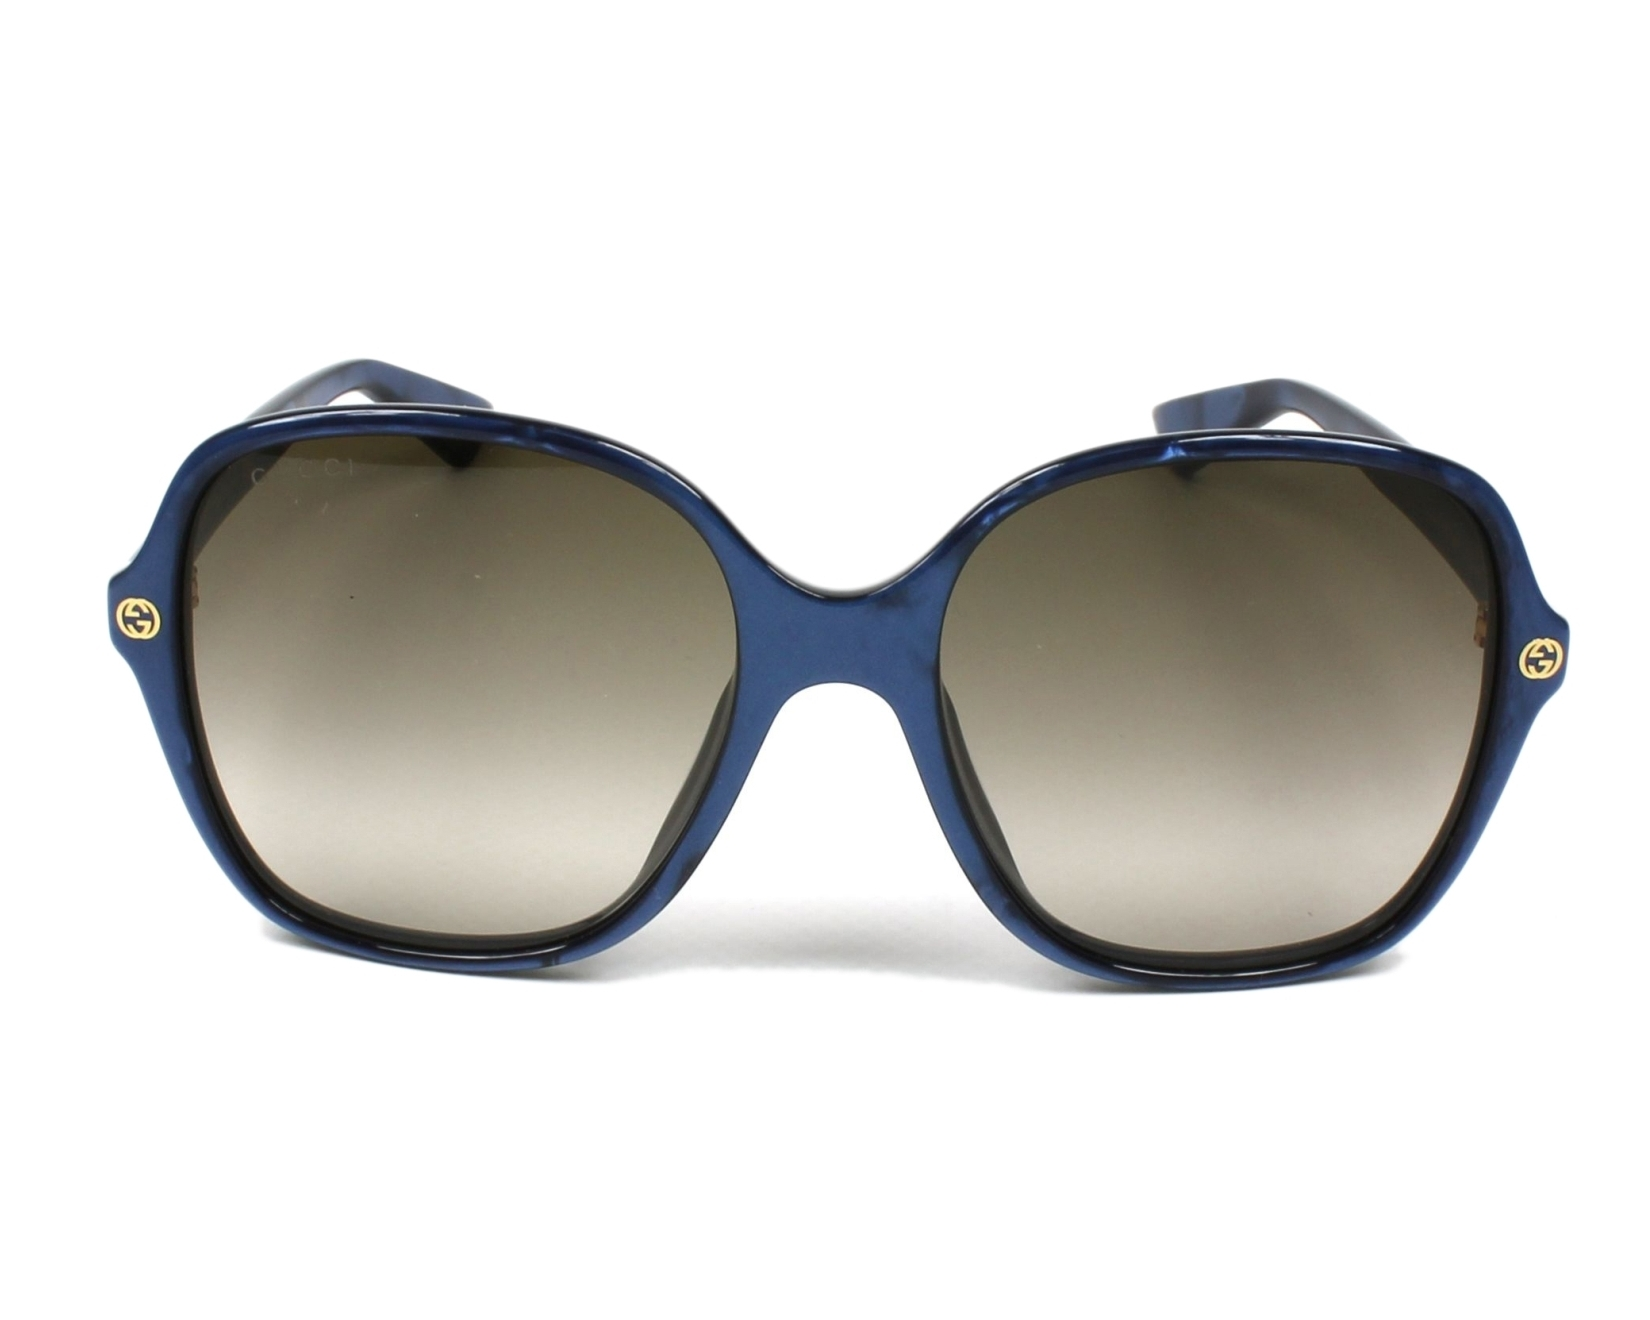 402a322def Sunglasses Gucci GG-0092-S 005 - Blue front view